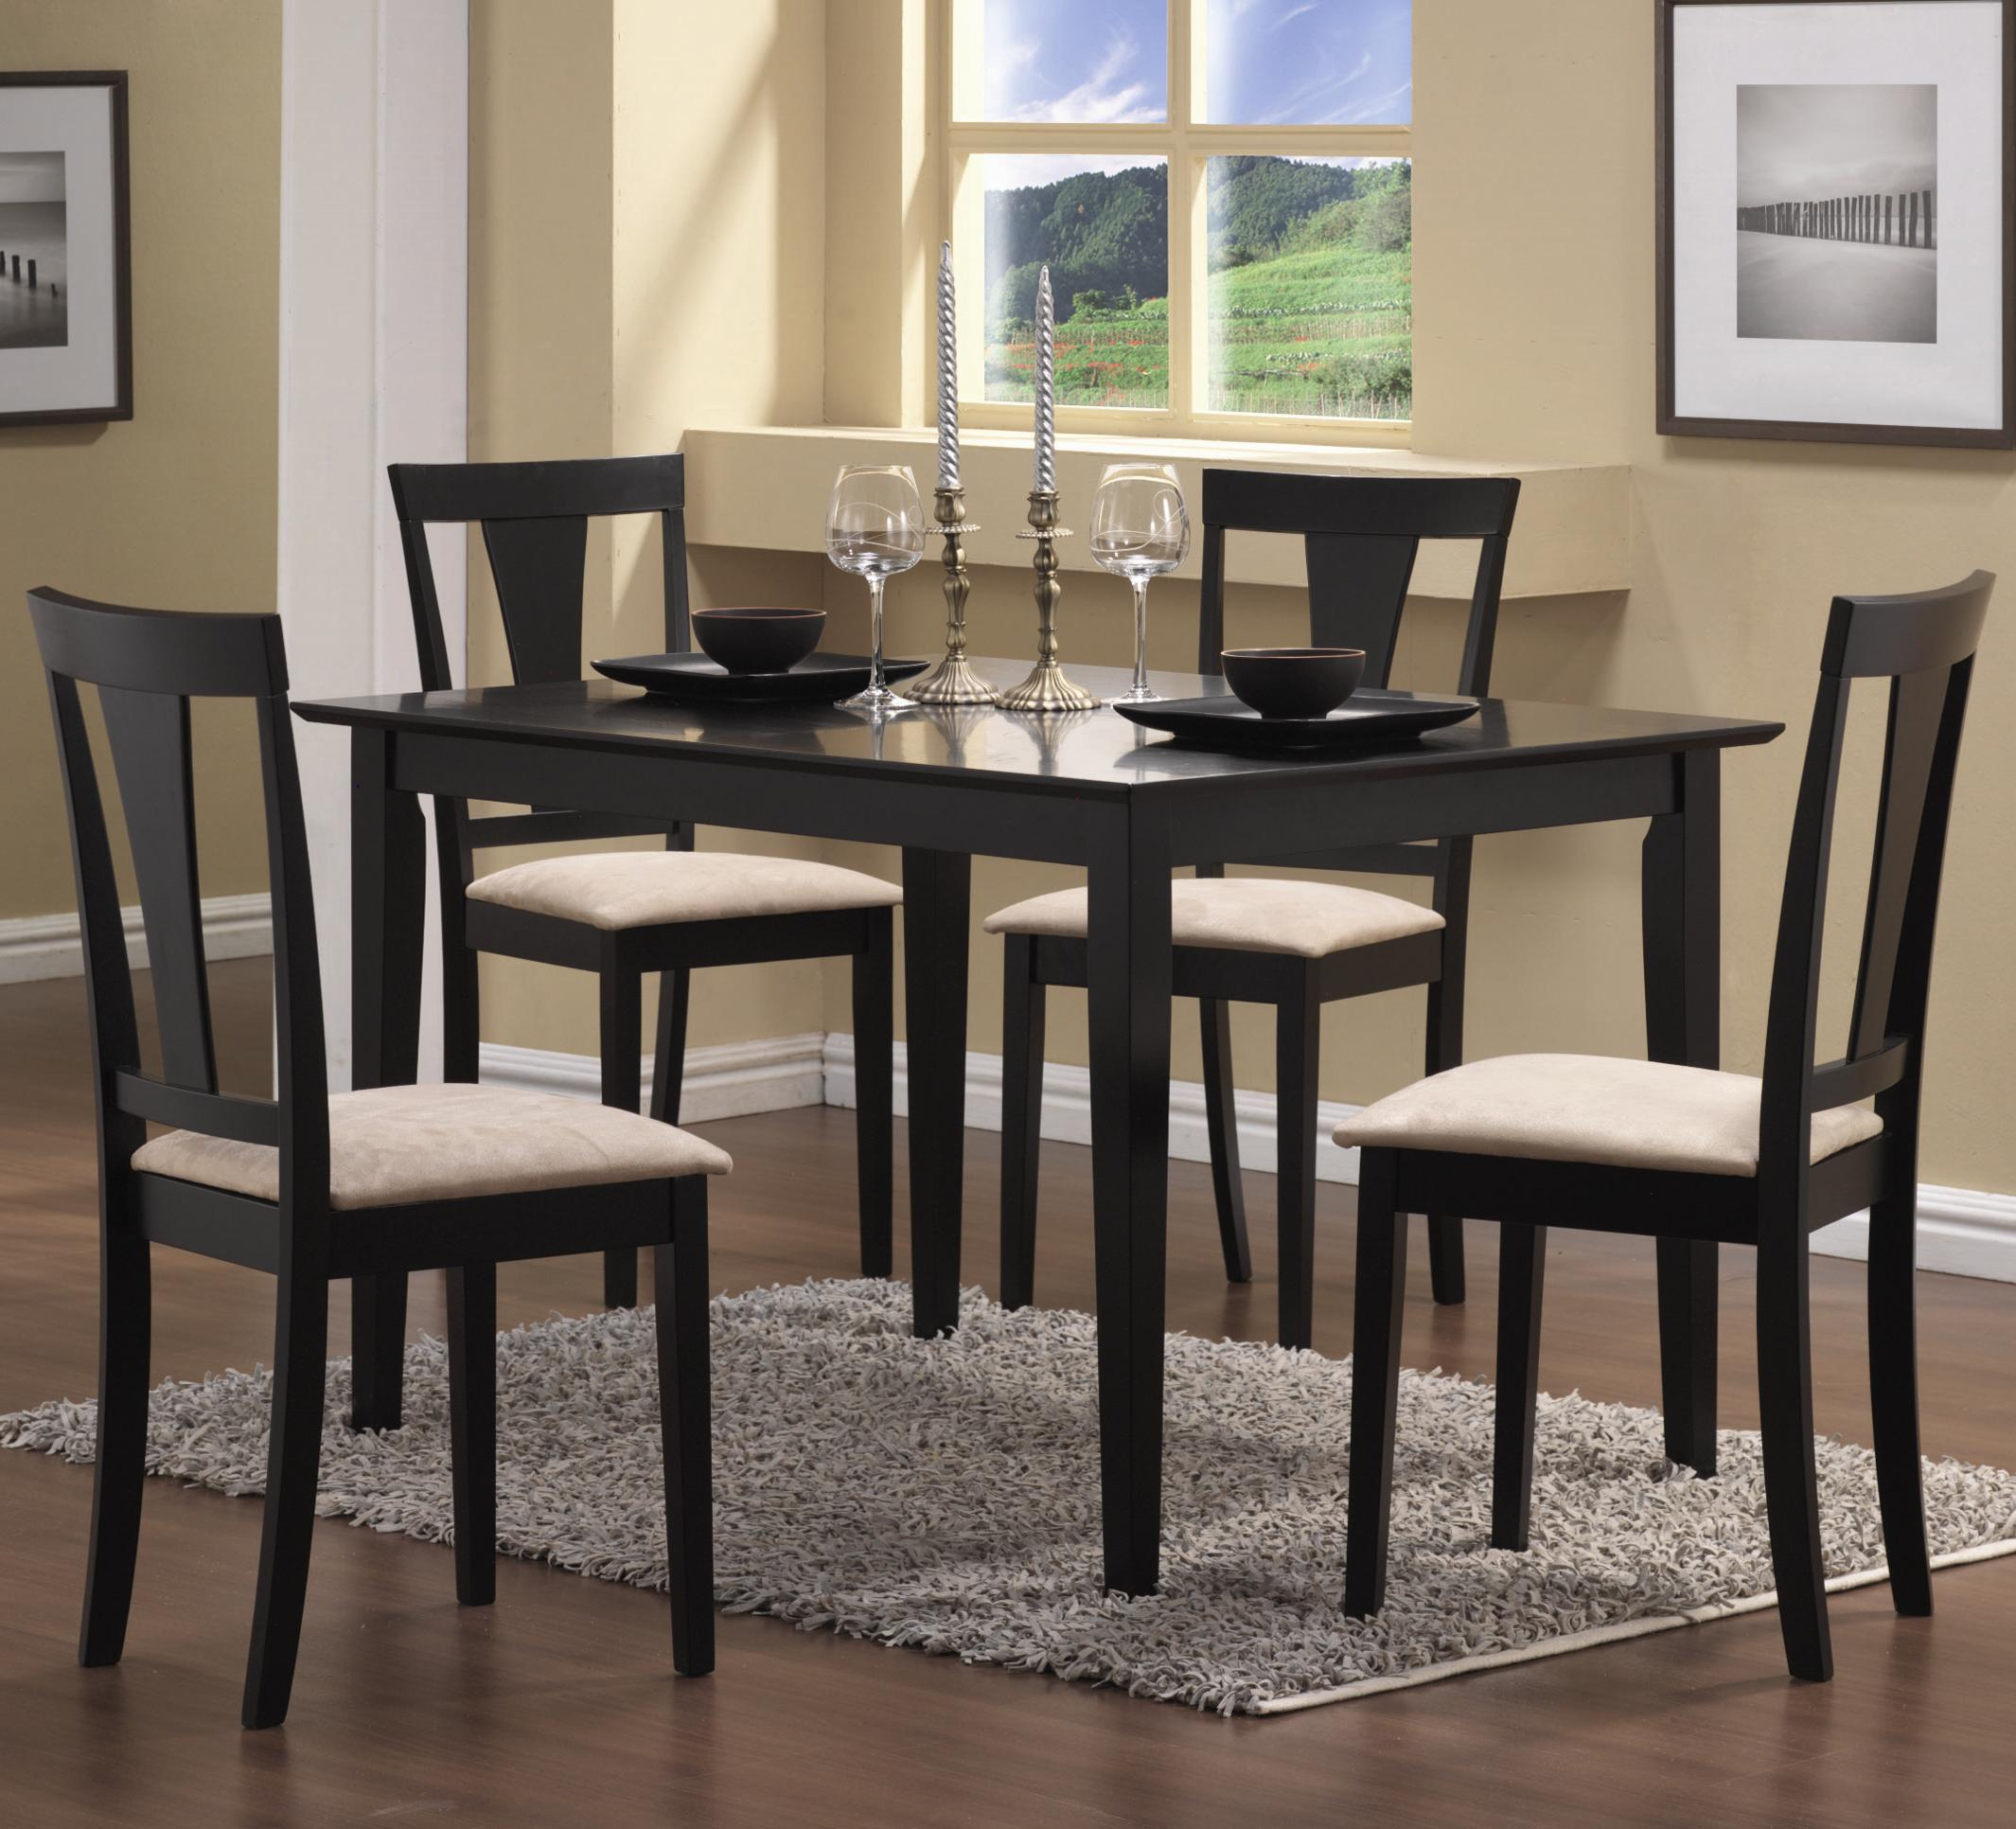 Coaster Geary 5 Piece Dining Set - Item Number: 150181